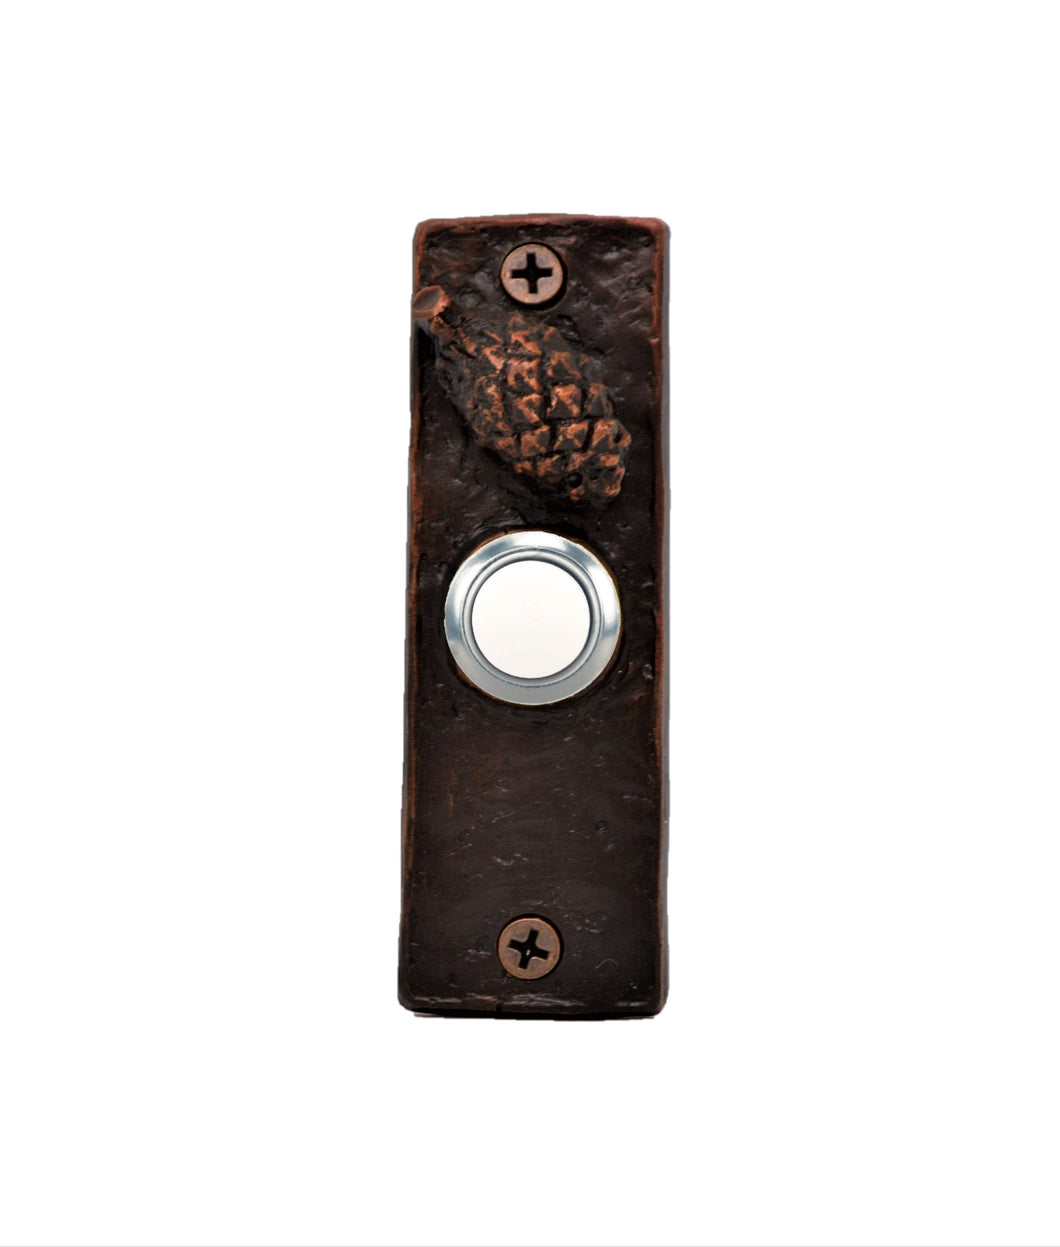 Slim Closed Cone Lodgepole Doorbell